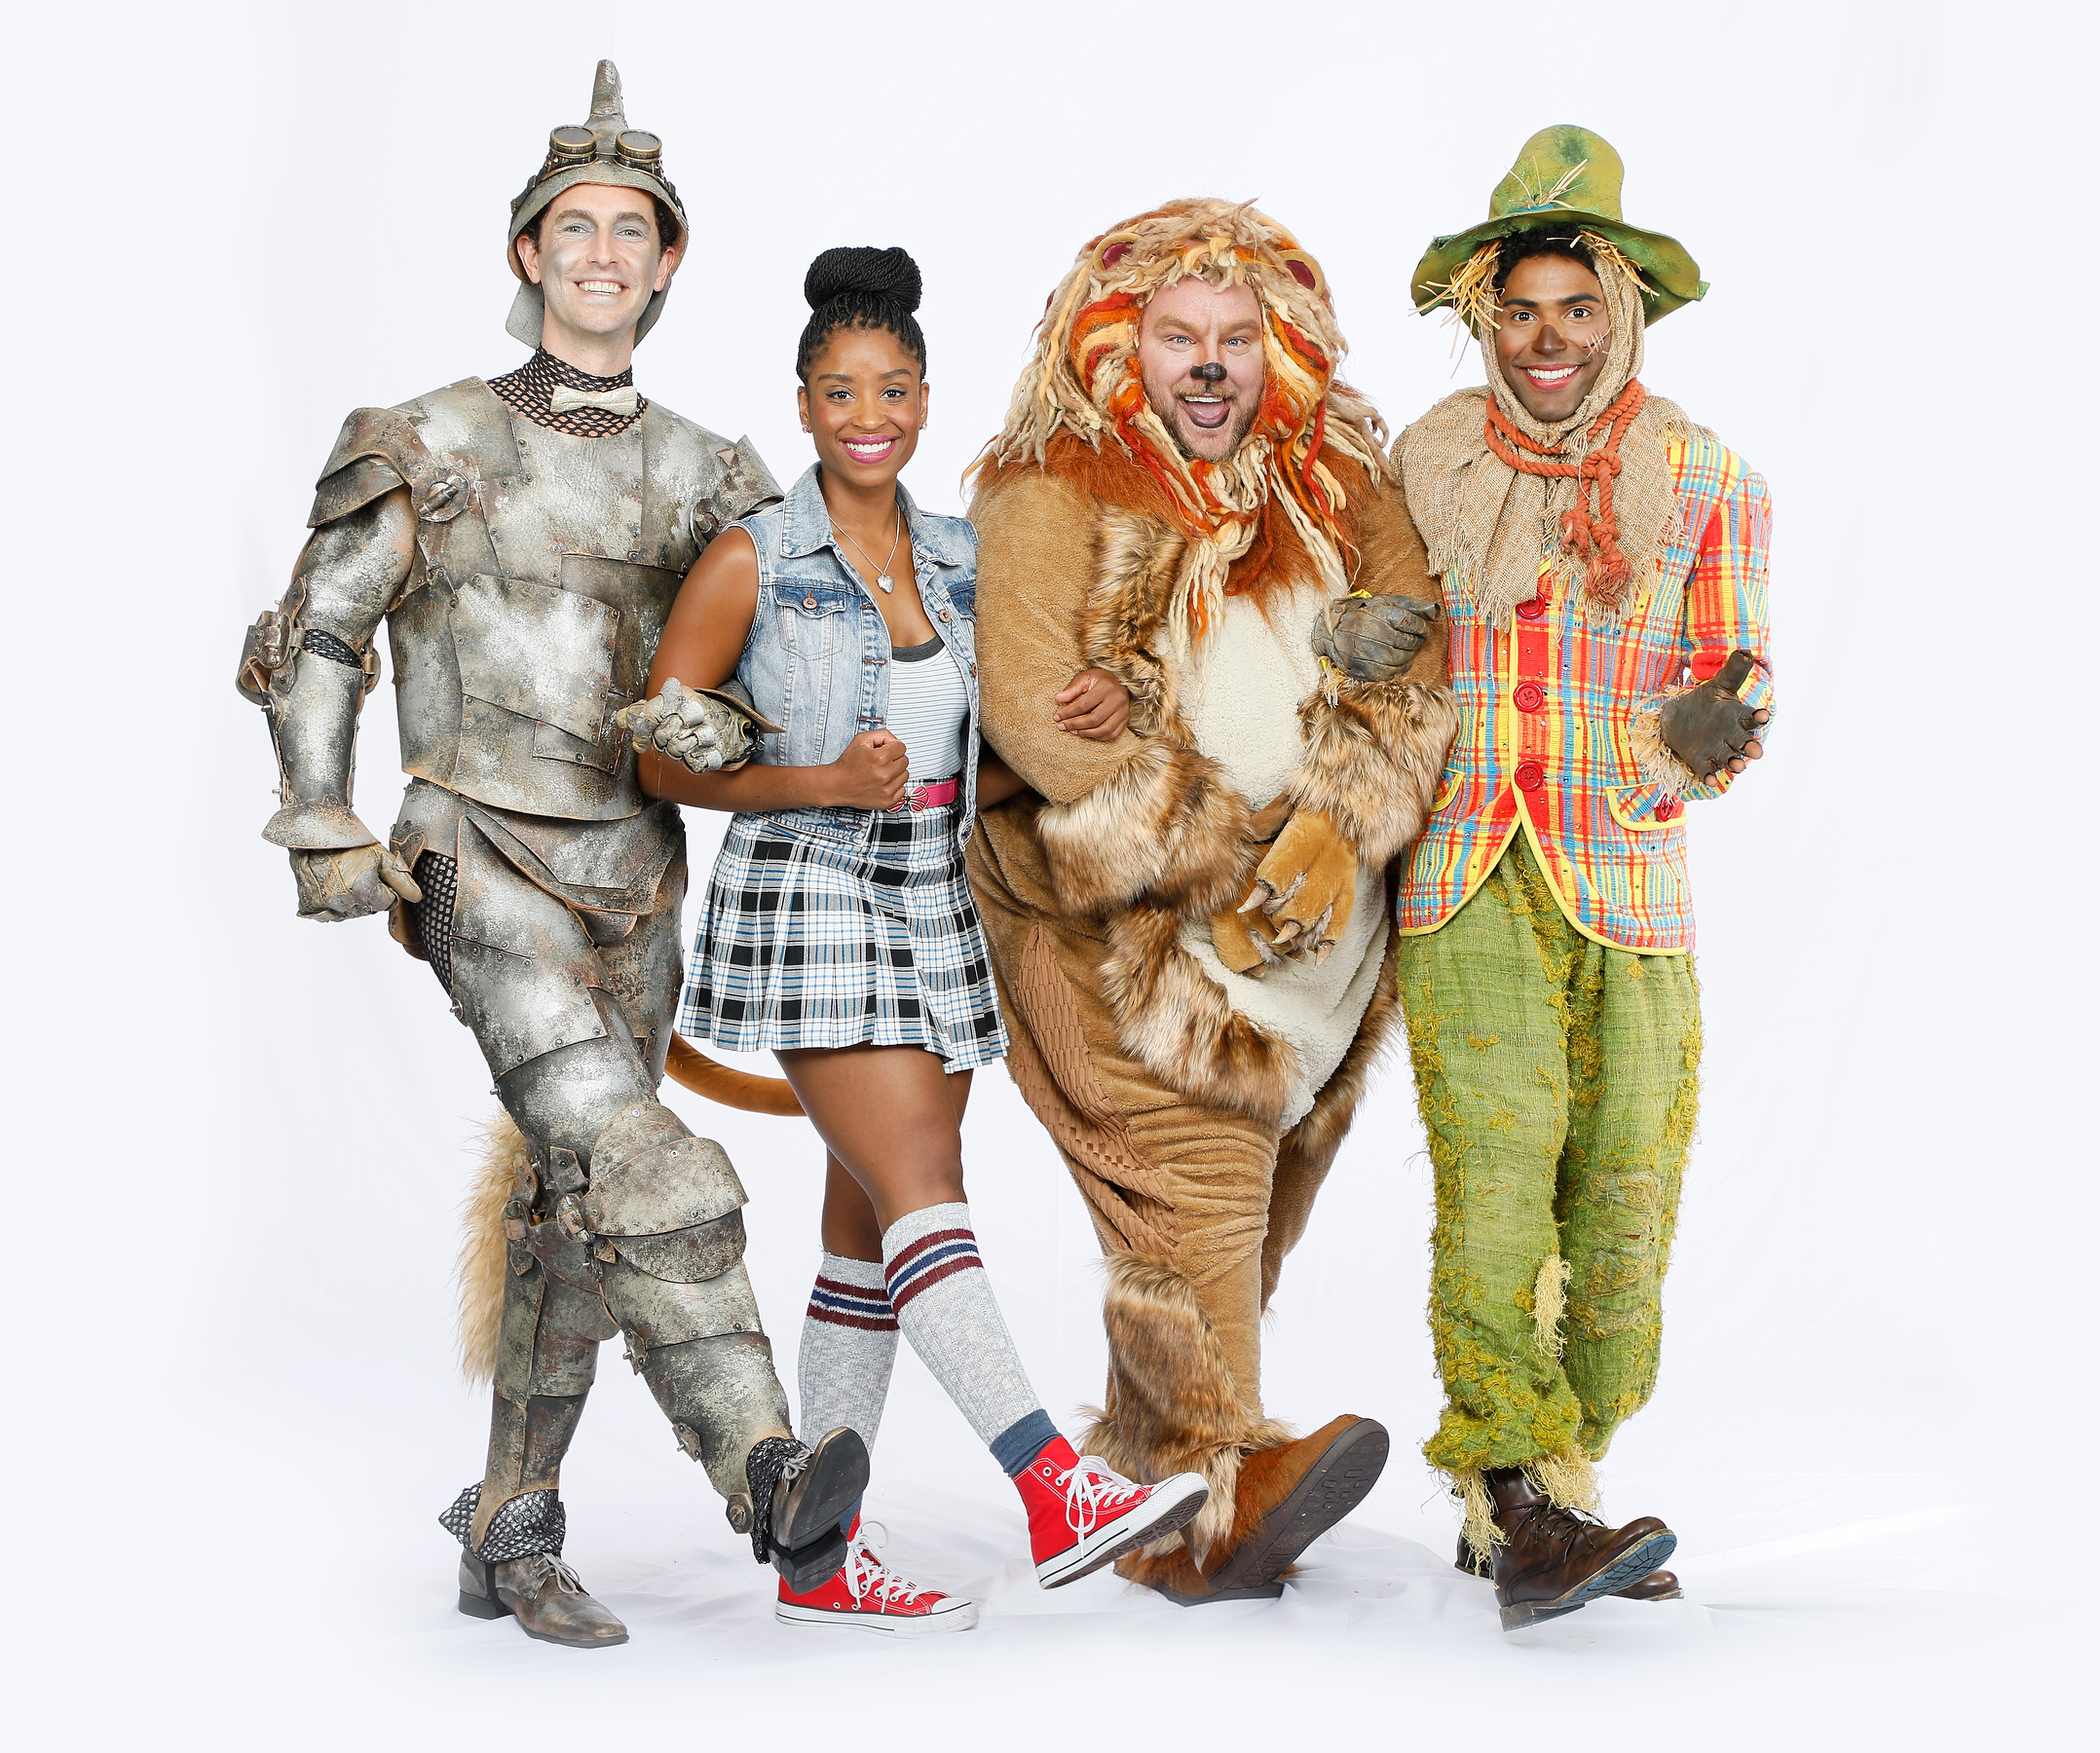 PAST EVENT: The Wizard of Oz – Ross Petty Productions (Elgin Theatre, Toronto) November 29, 2018 – January 5, 2019